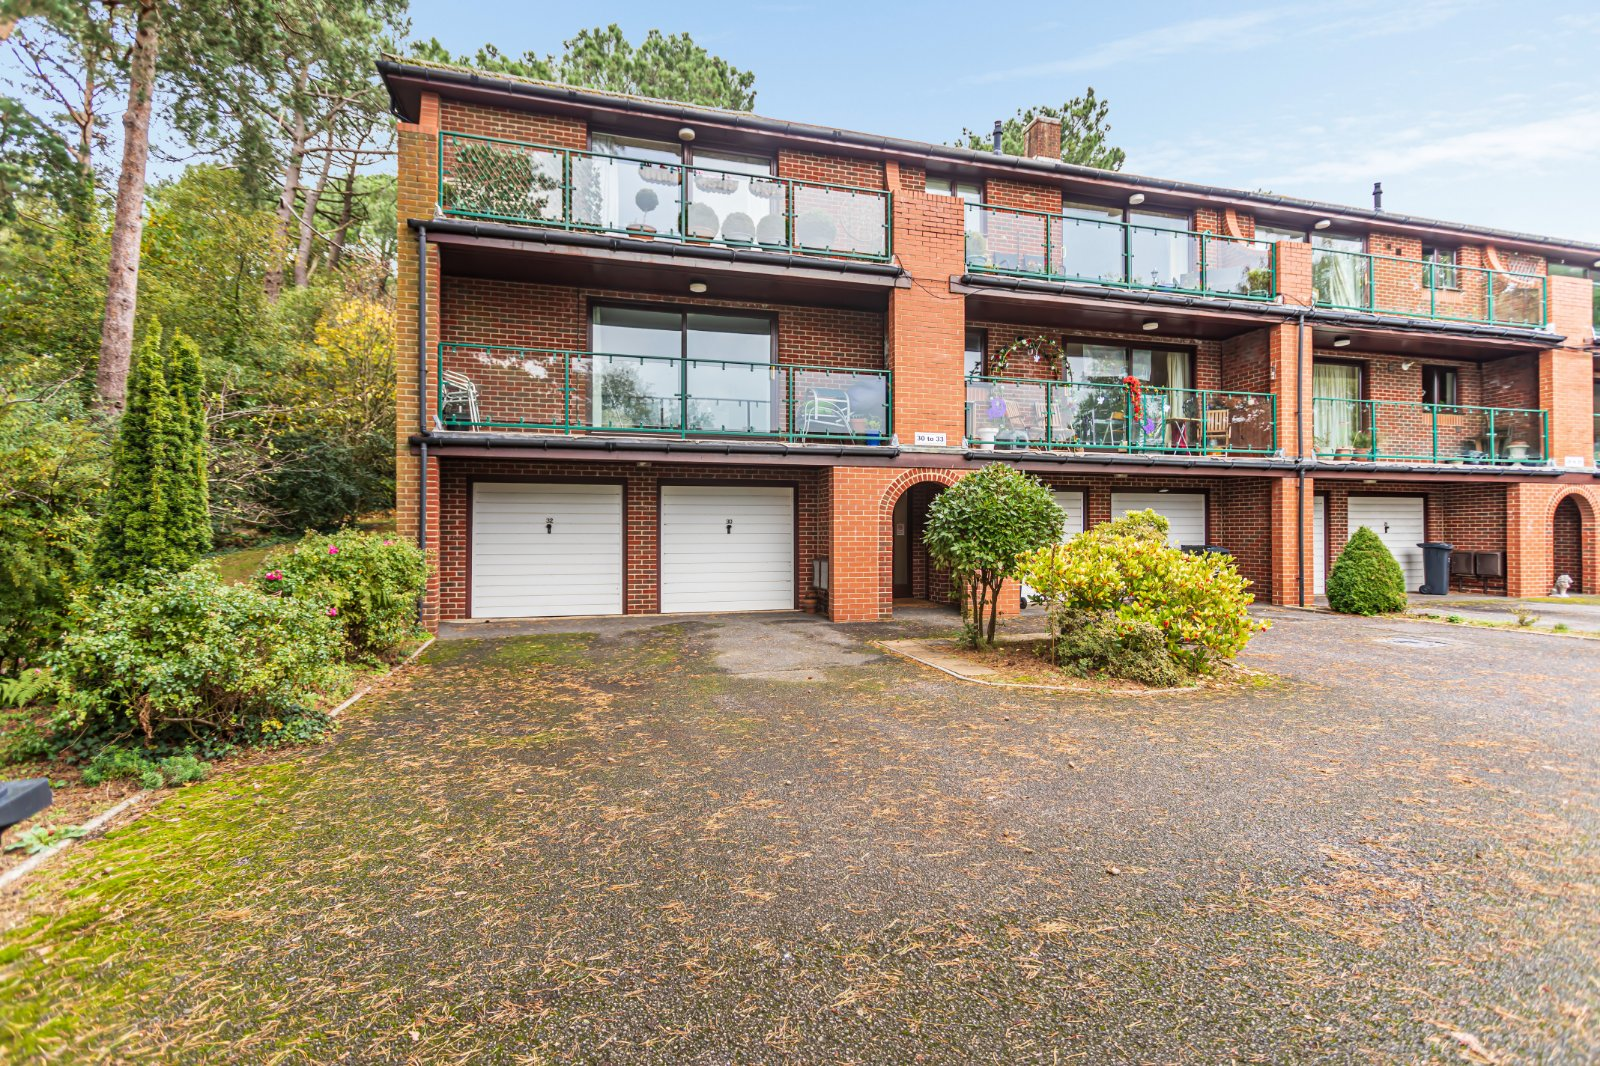 2 bed apartment for sale in Constitution Hill Gardens, Lower Parkstone - Property Image 1